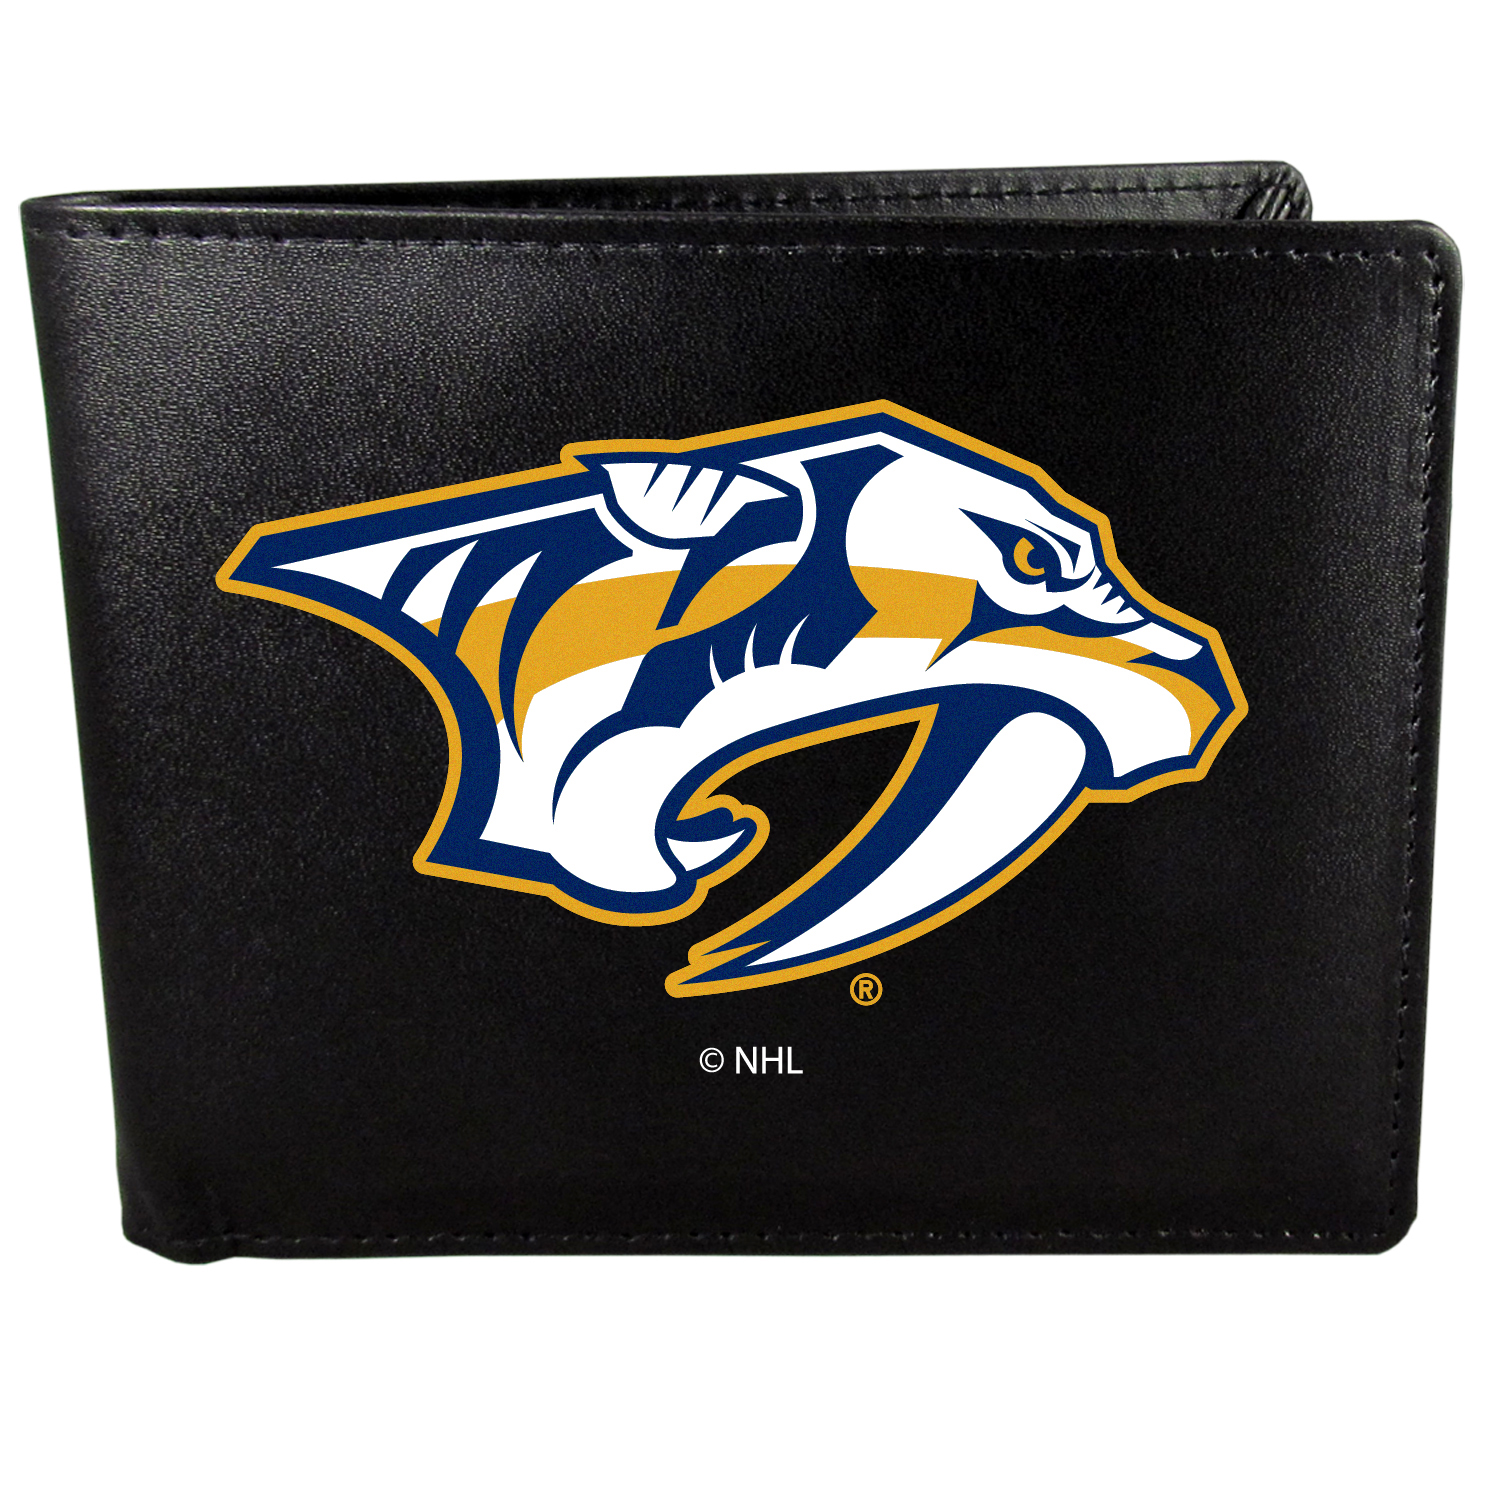 Nashville Predators Bi-fold Wallet Large Logo - Sports fans do not have to sacrifice style with this classic bi-fold wallet that sports the Nashville Predators?extra large logo. This men's fashion accessory has a leather grain look and expert craftmanship for a quality wallet at a great price. The wallet features inner credit card slots, windowed ID slot and a large billfold pocket. The front of the wallet features a printed team logo.